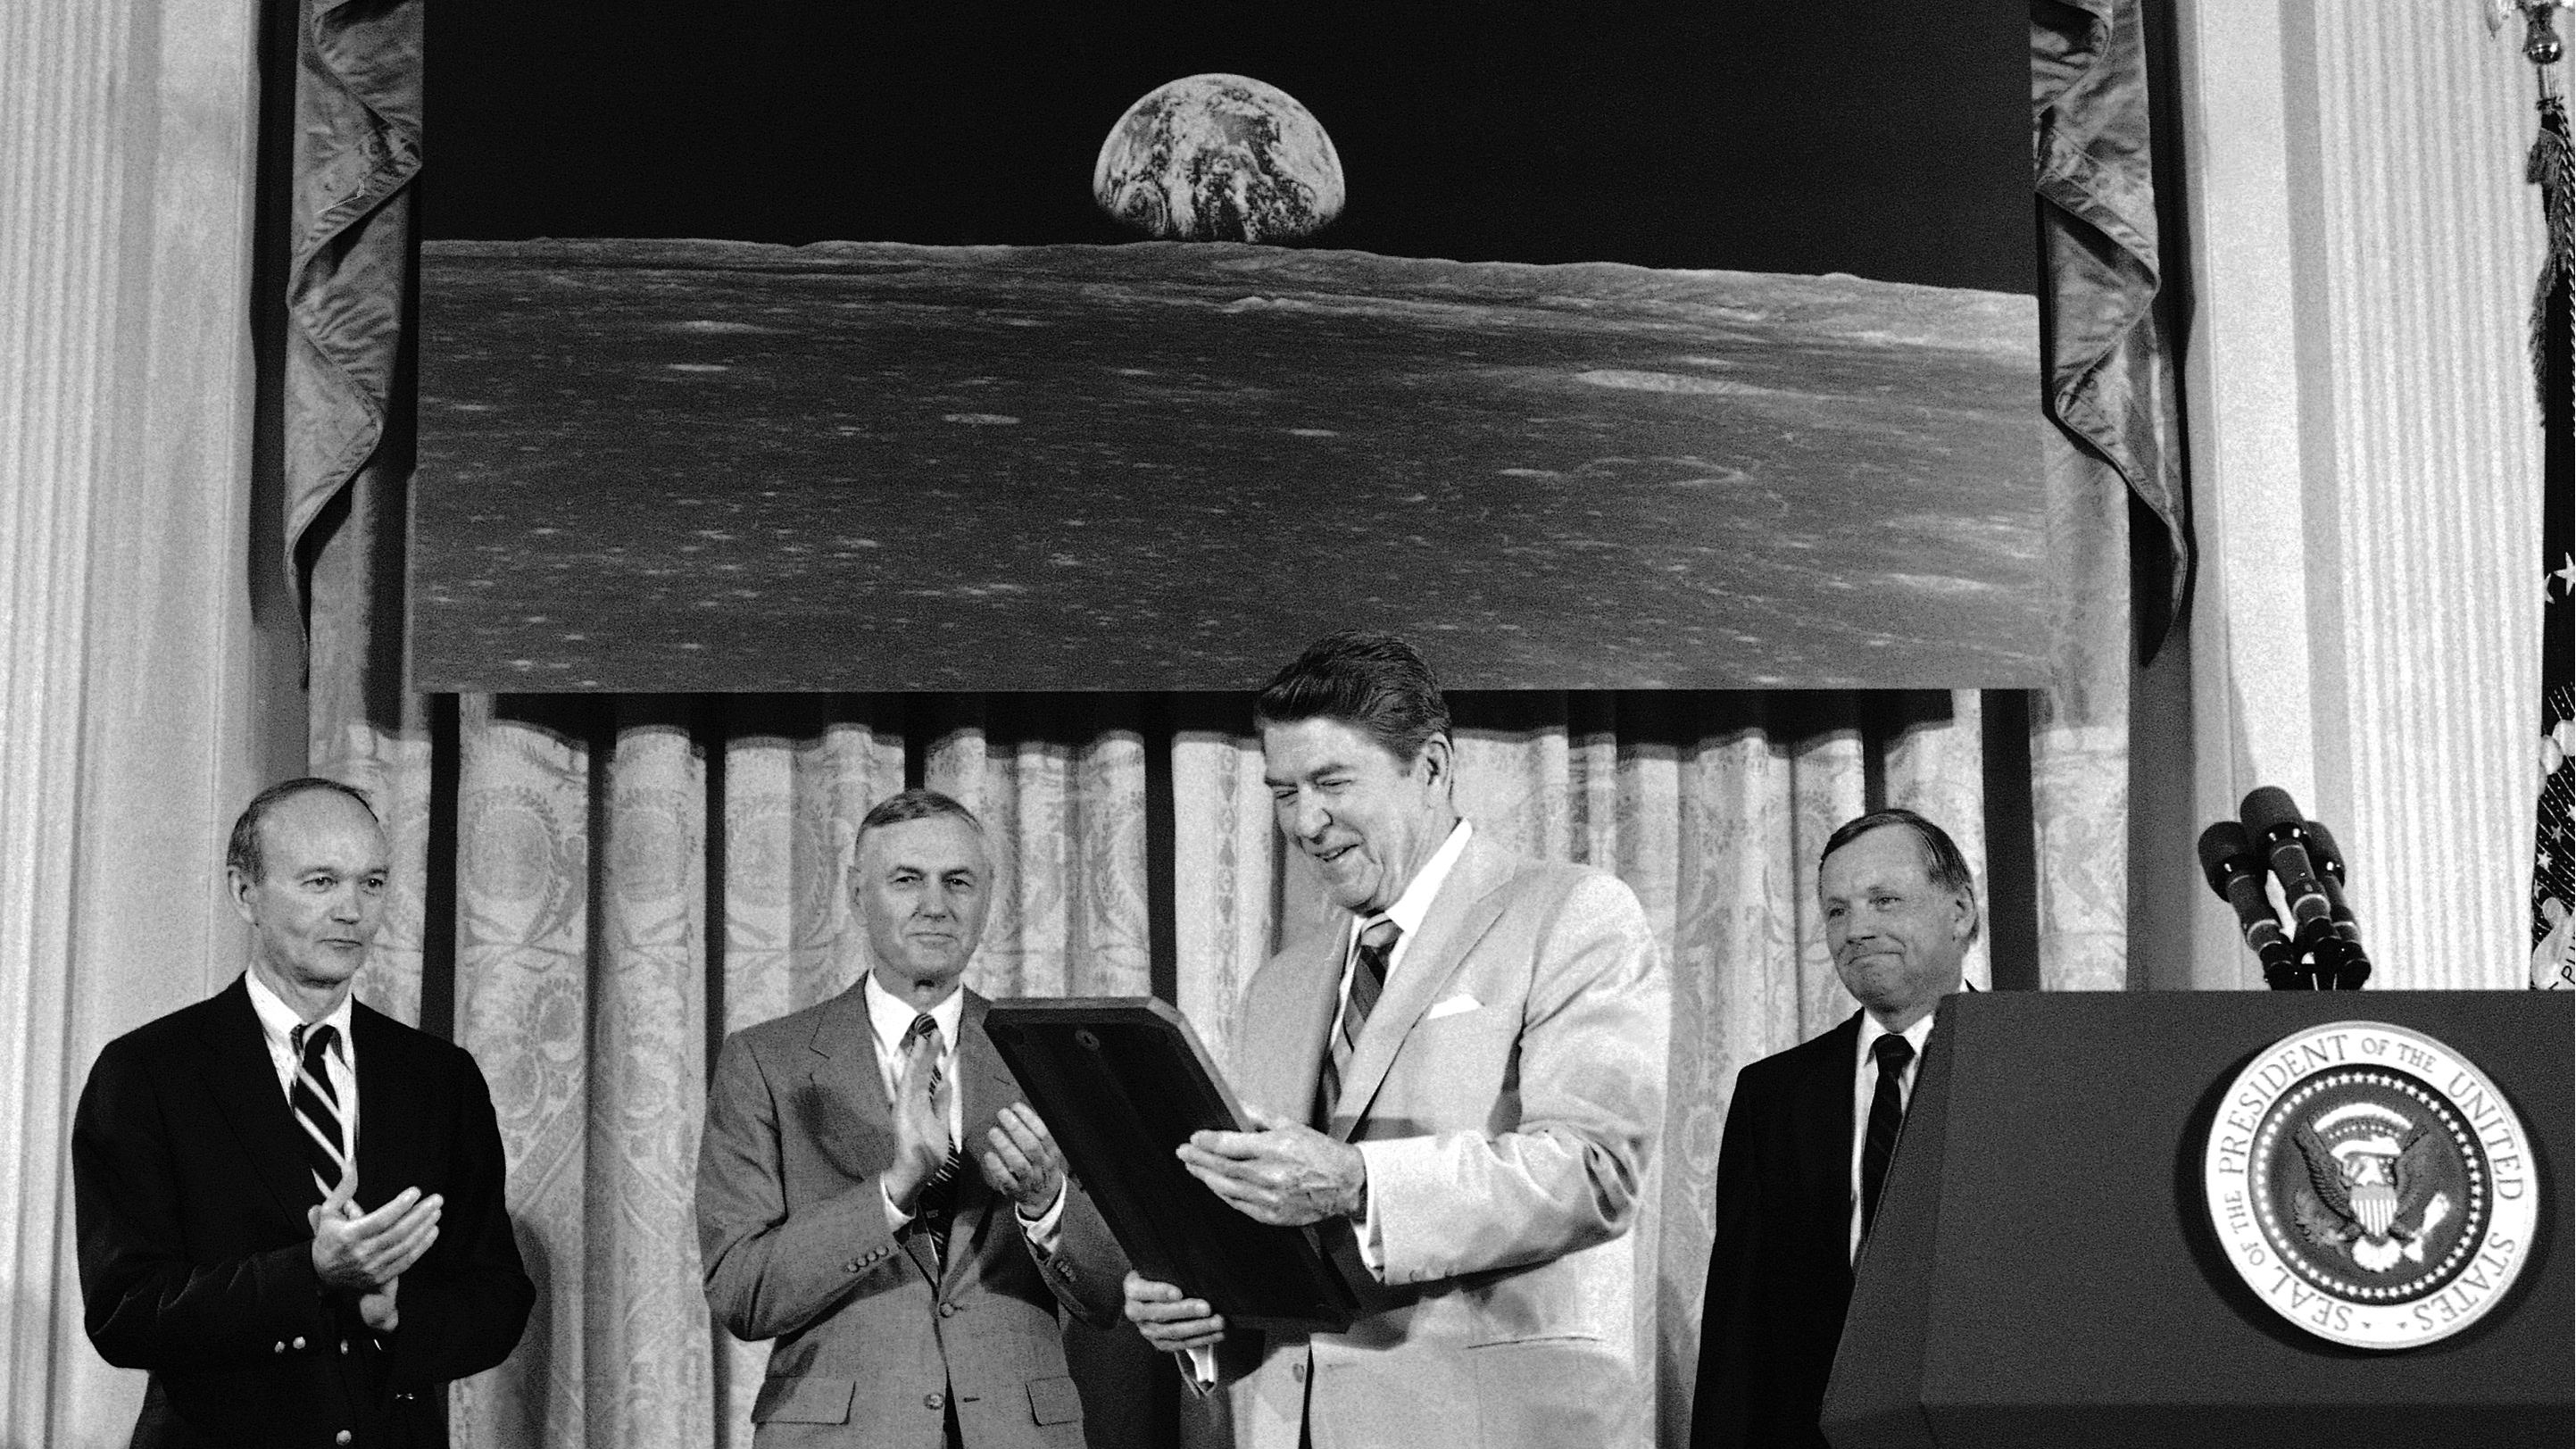 Pres. Ronald Reagan, center, admires a plaque he was presented by Apollo 11 astronauts during a ceremony at the White House on the 15th anniversary of their mission to the moon at the White House during a ceremony to proclaim Space Exploration Day, Friday, July 21, 1984, Washington, D.C. Behind the President, from left are, Michael Collins, NASA Administrator James Beggs; Reagan; and Neil Armstrong.